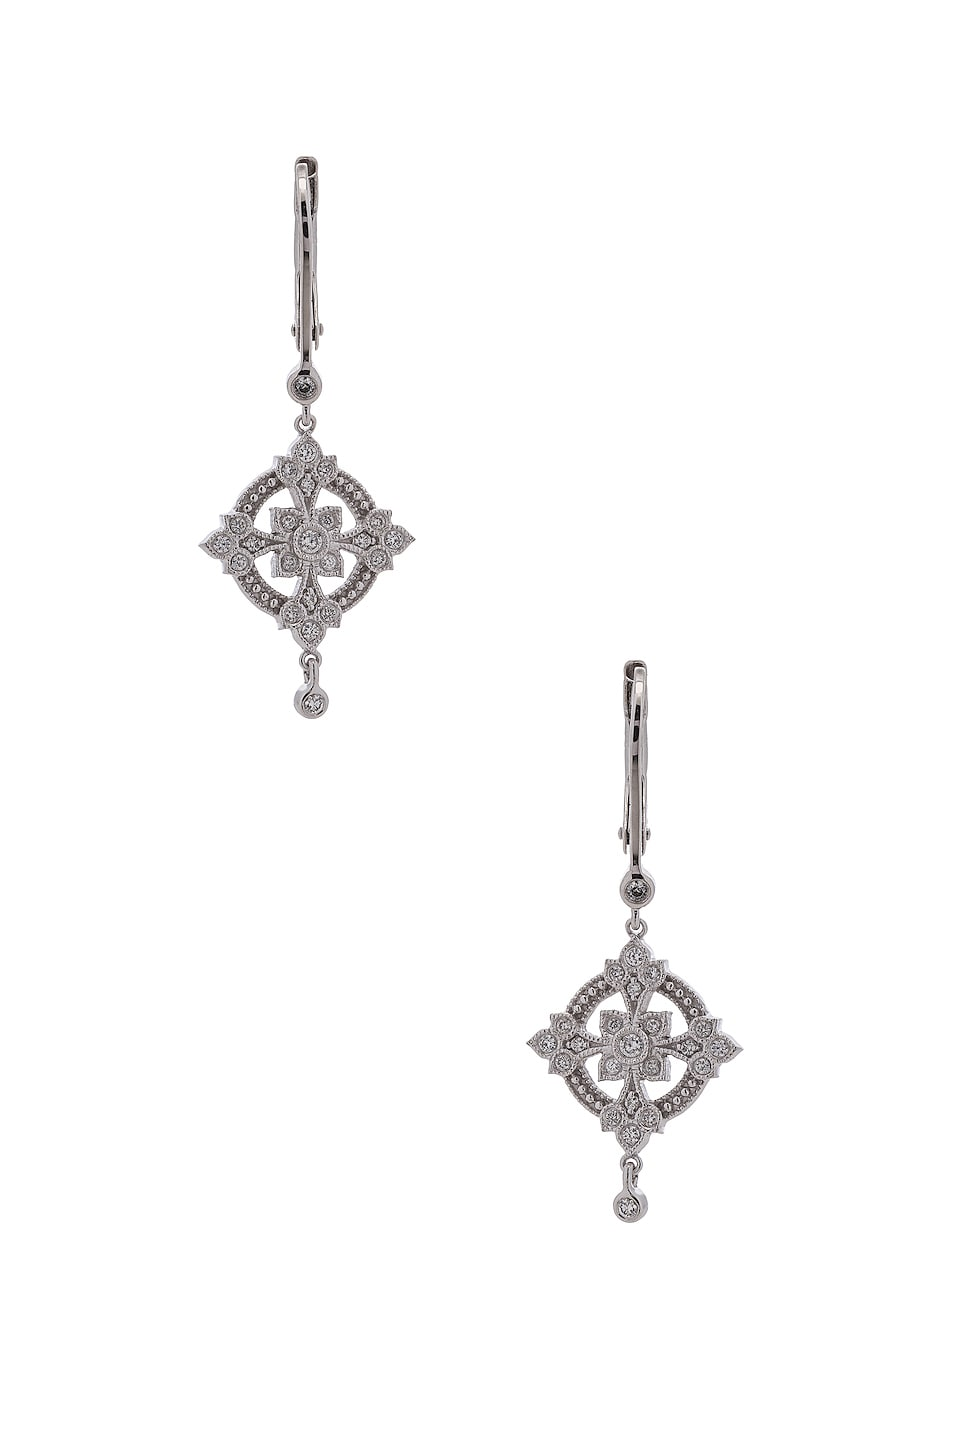 STONE PARIS EXQUISE EARRINGS IN METALLICS